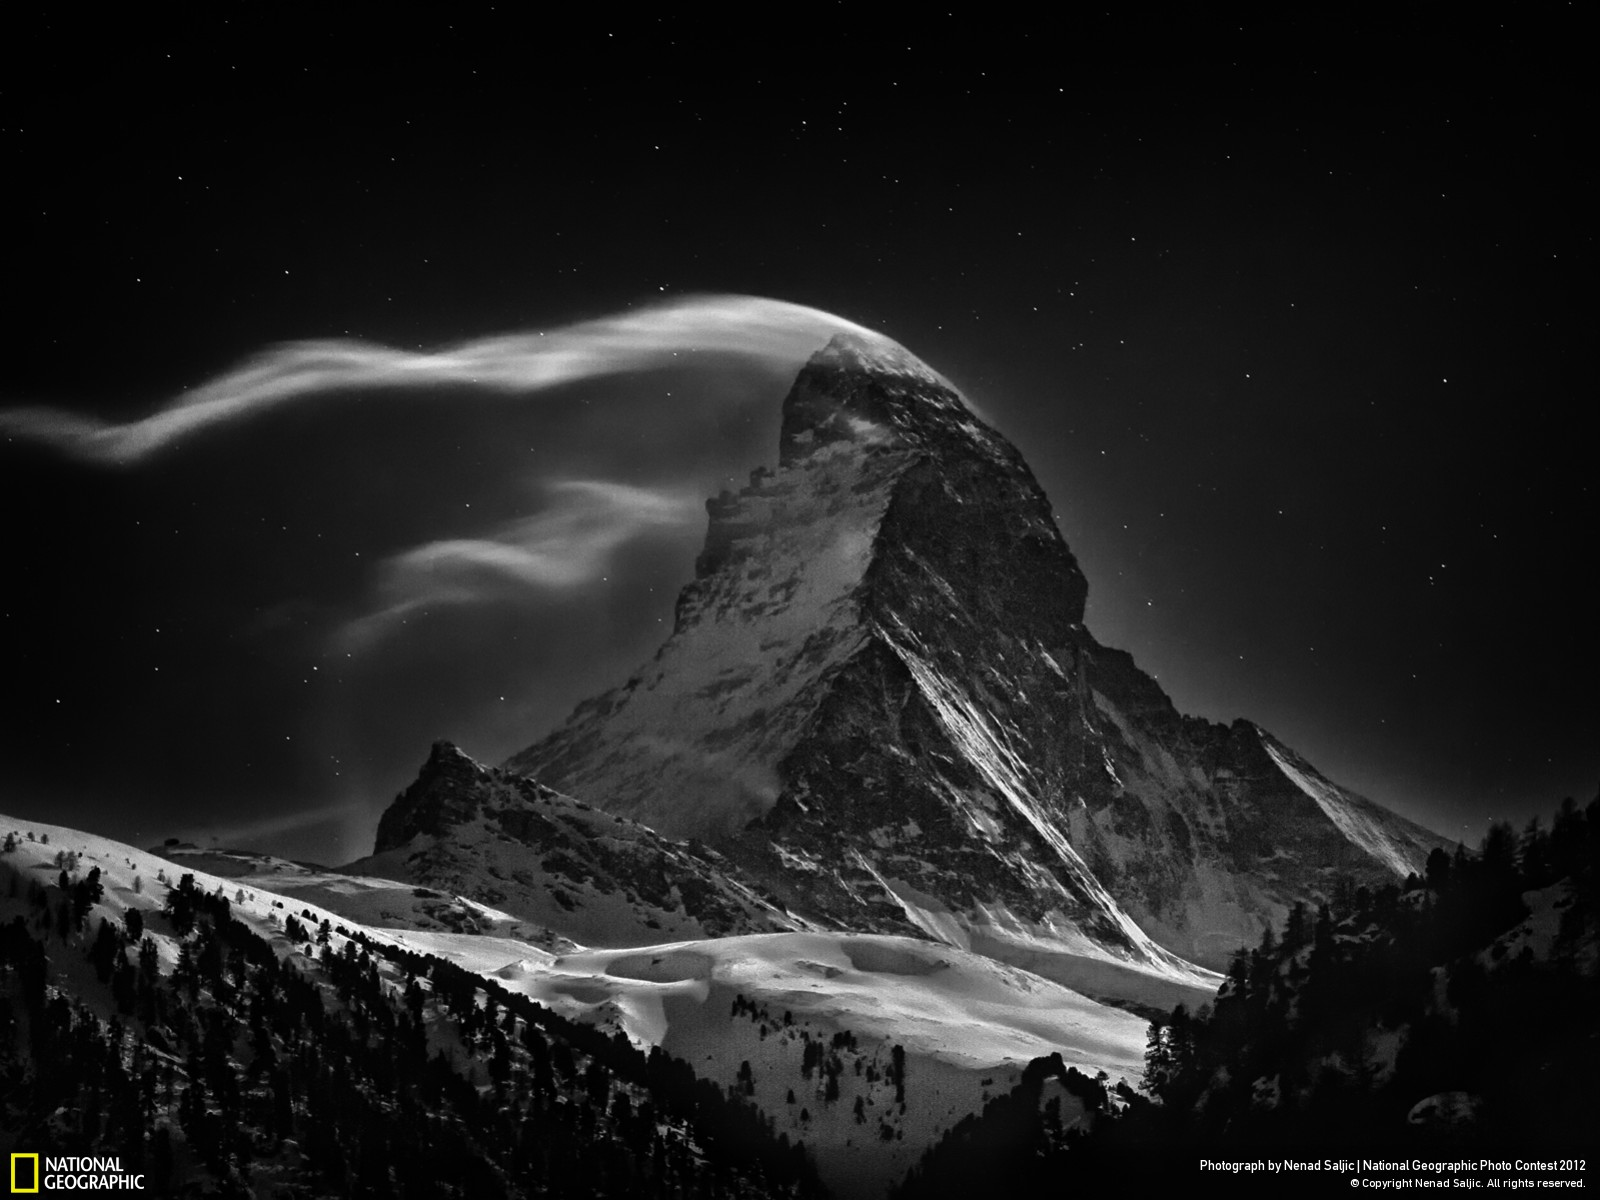 National-Geographic-Places-Winner-Photo Stunning Tigress wins National Geographic Photo Contest 2012 News and Reviews